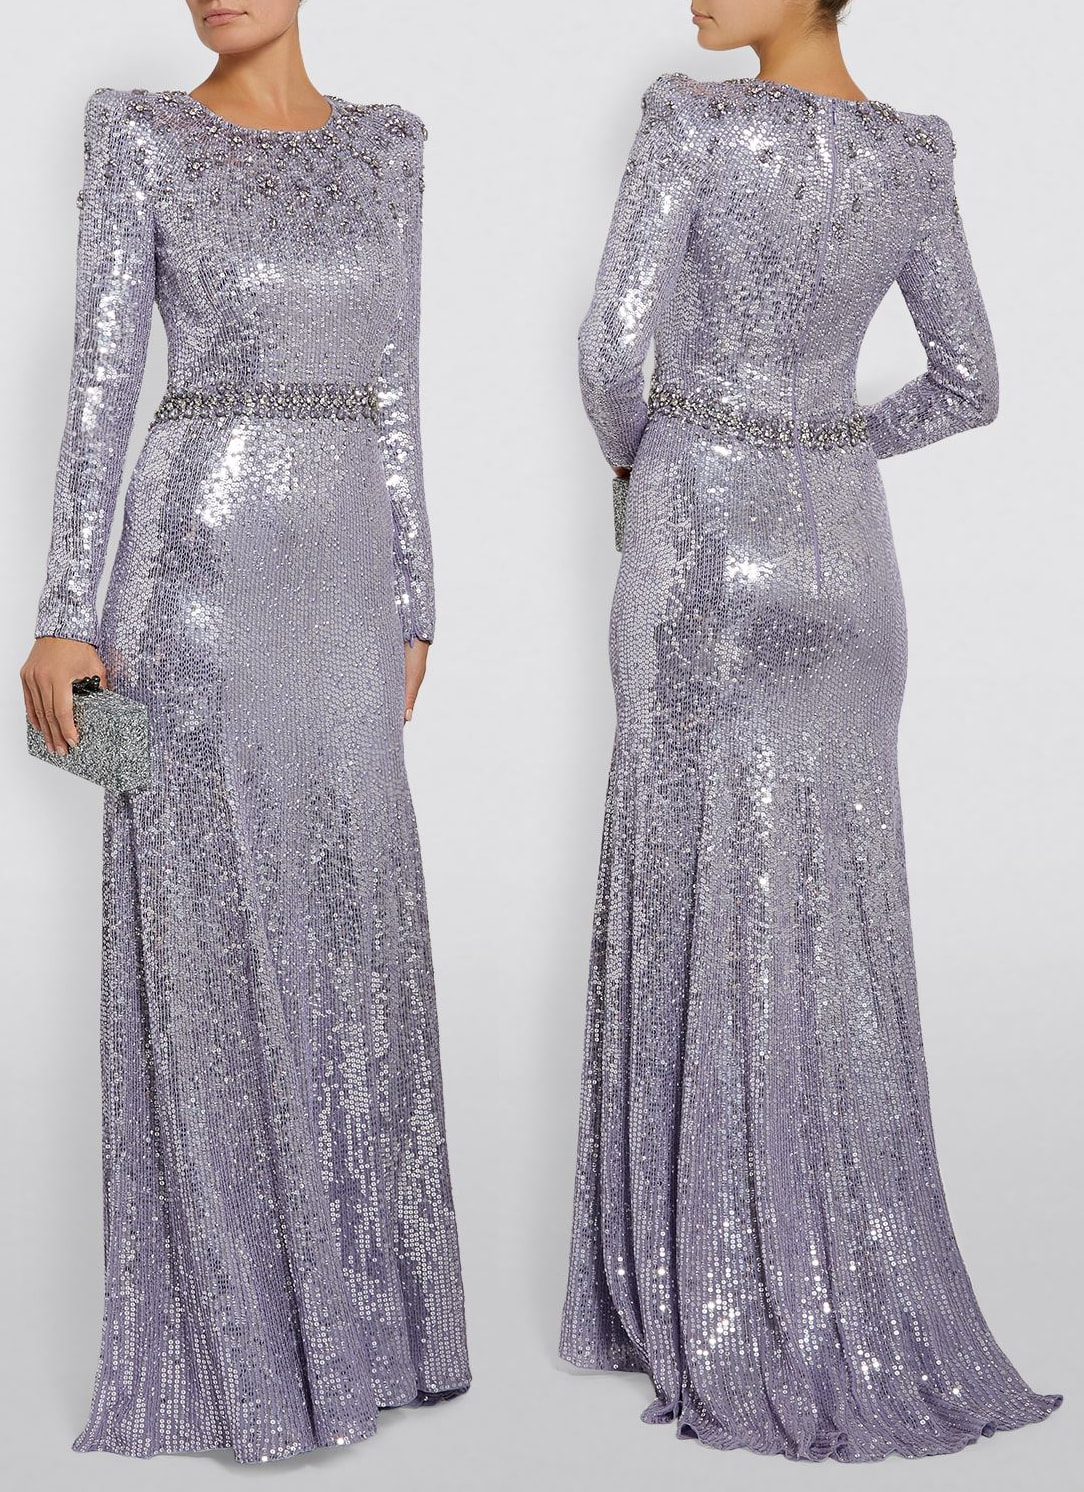 Jenny Packham Georgia sequin gown